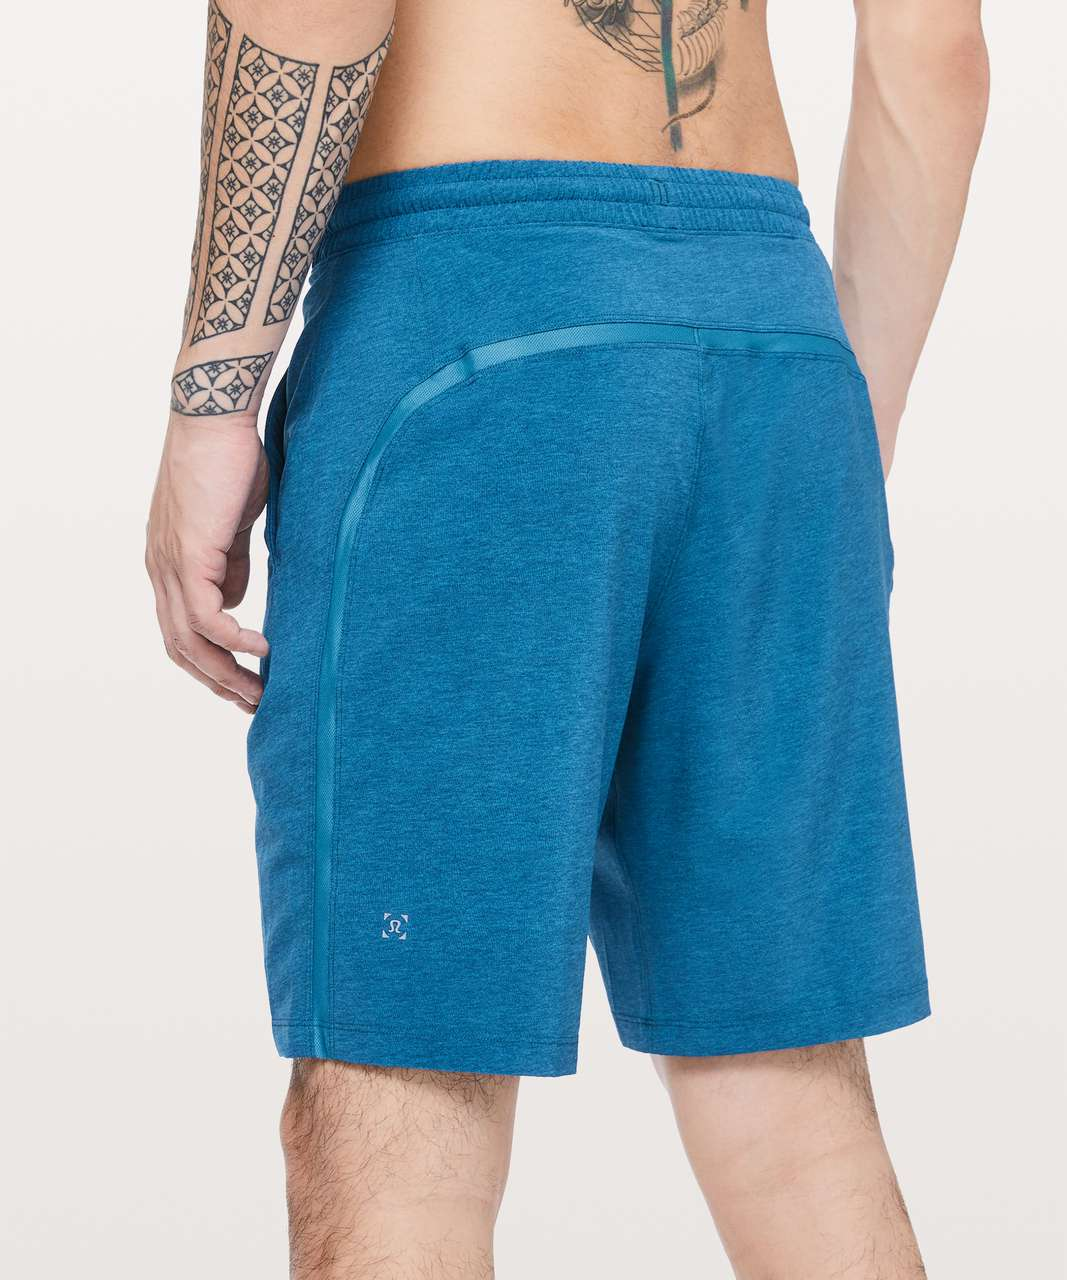 "Lululemon Pace Breaker Short 9"" *Linerless - Heathered Texture Printed Vivid Aqua"